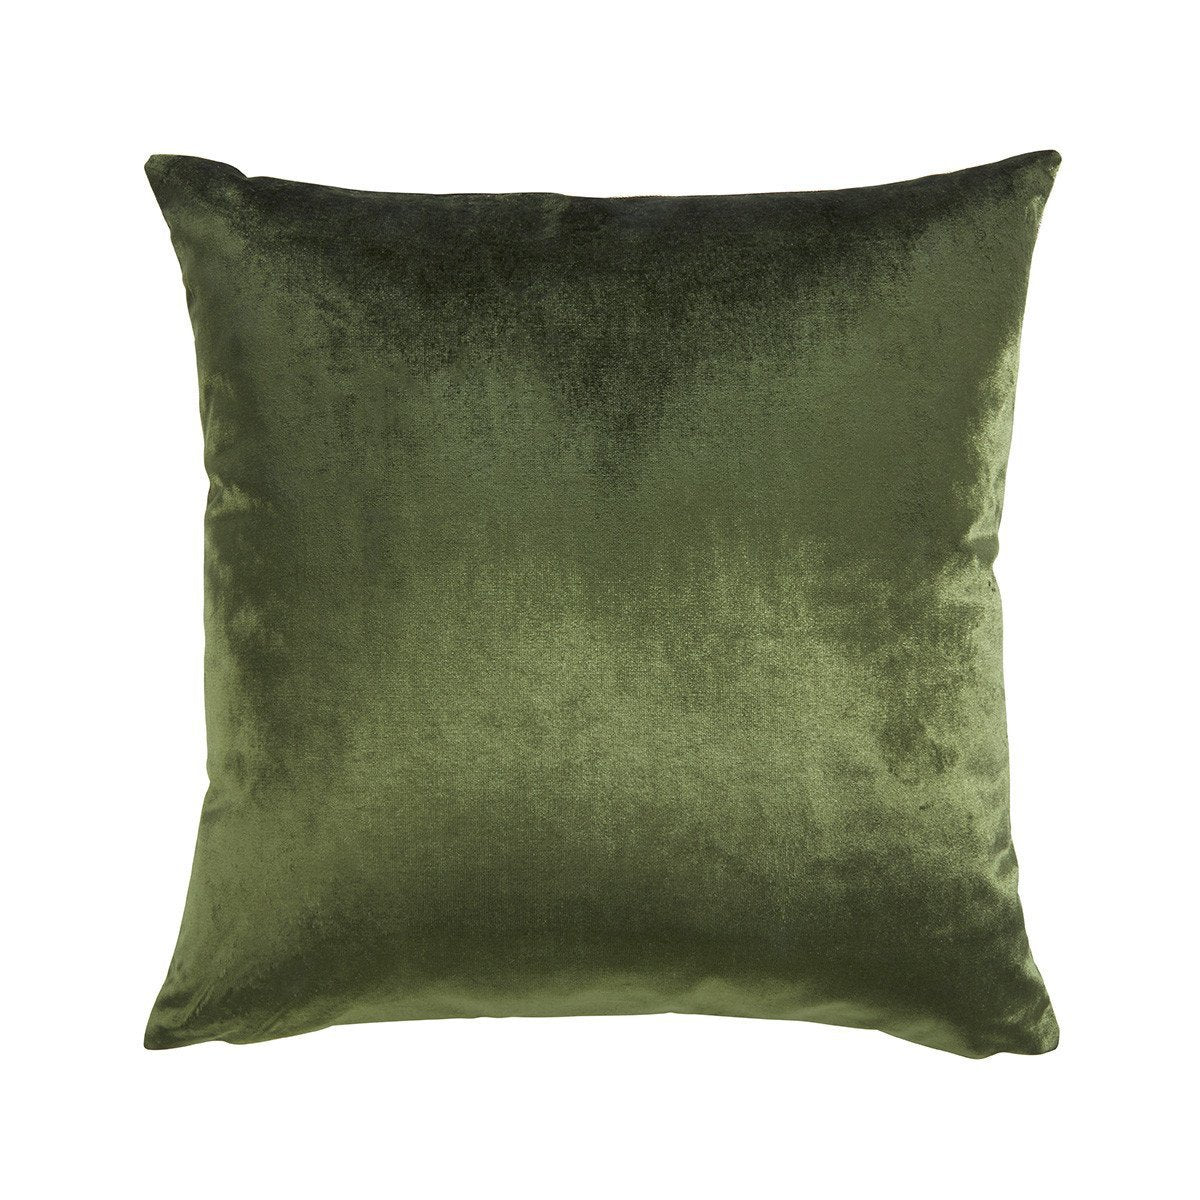 Berlingot Kaki Decorative Pillow by Iosis